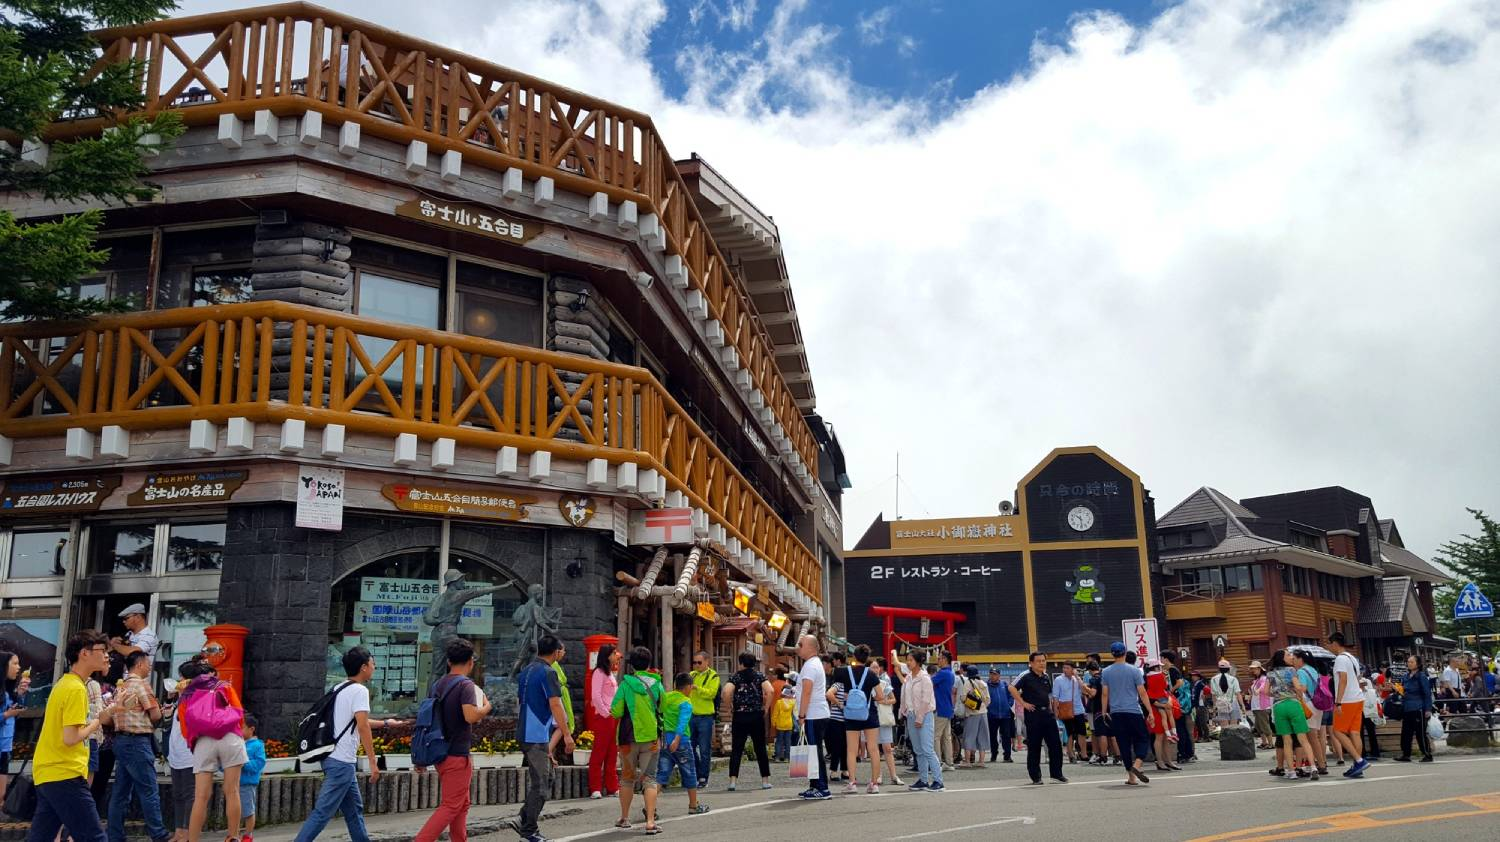 Mount Fuji's 5th Station - Things To Do In Tokyo